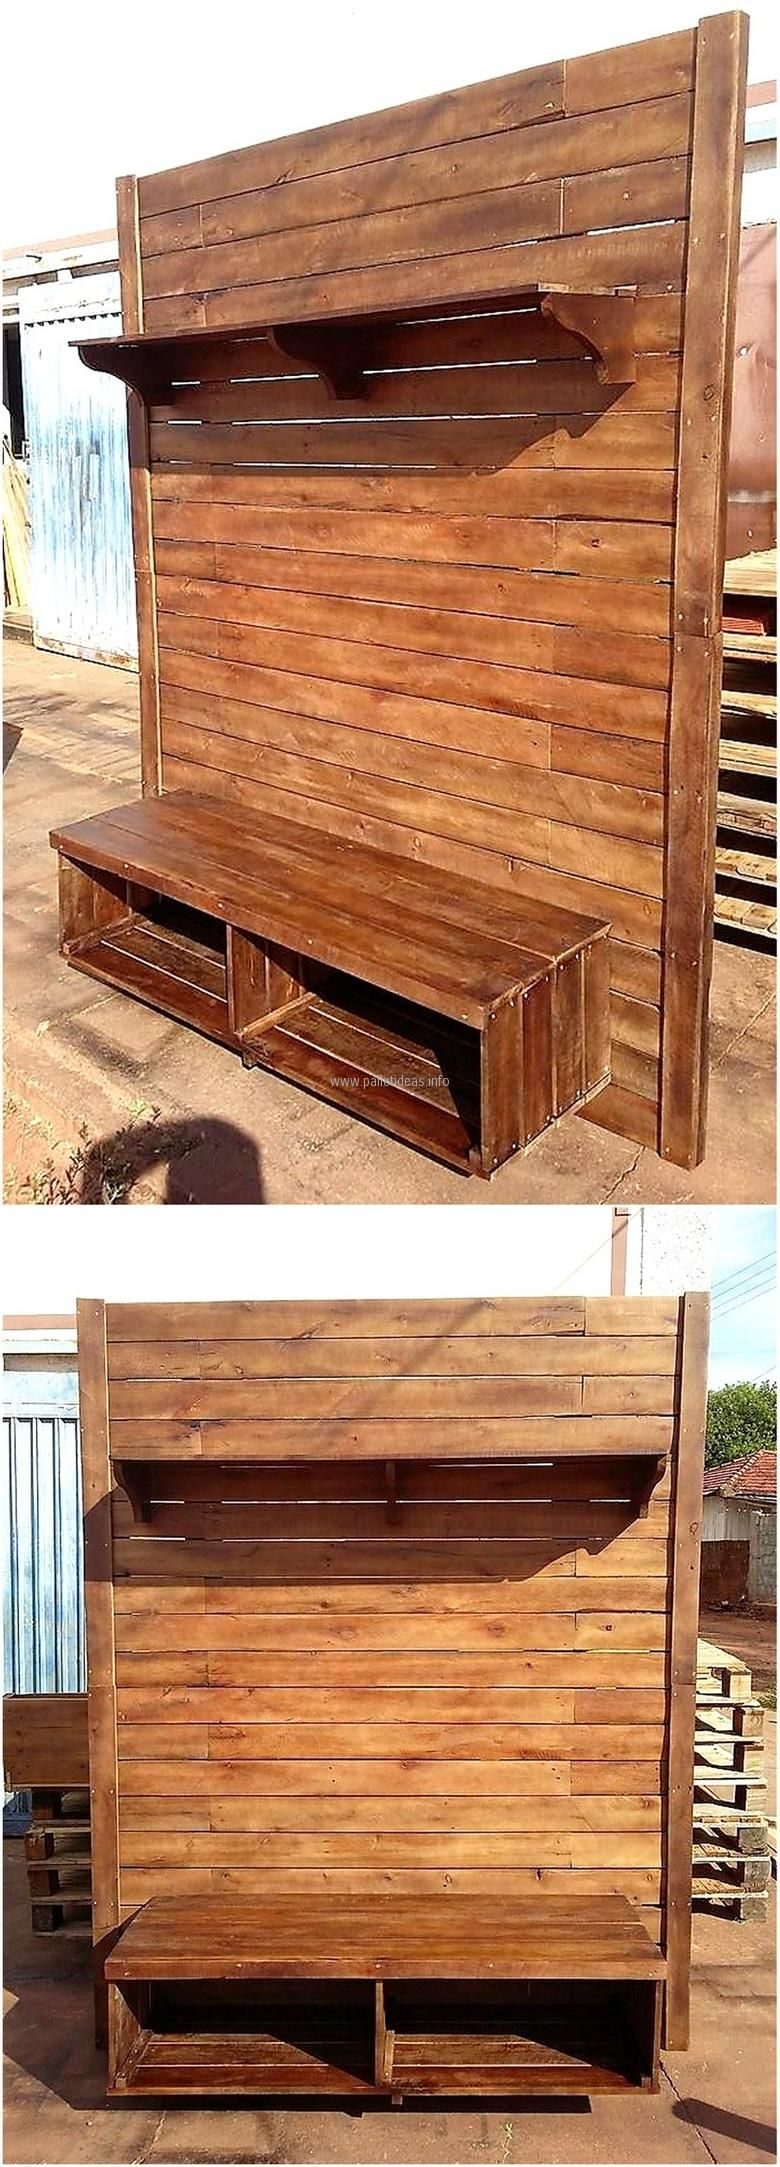 Let us start with the furniture for